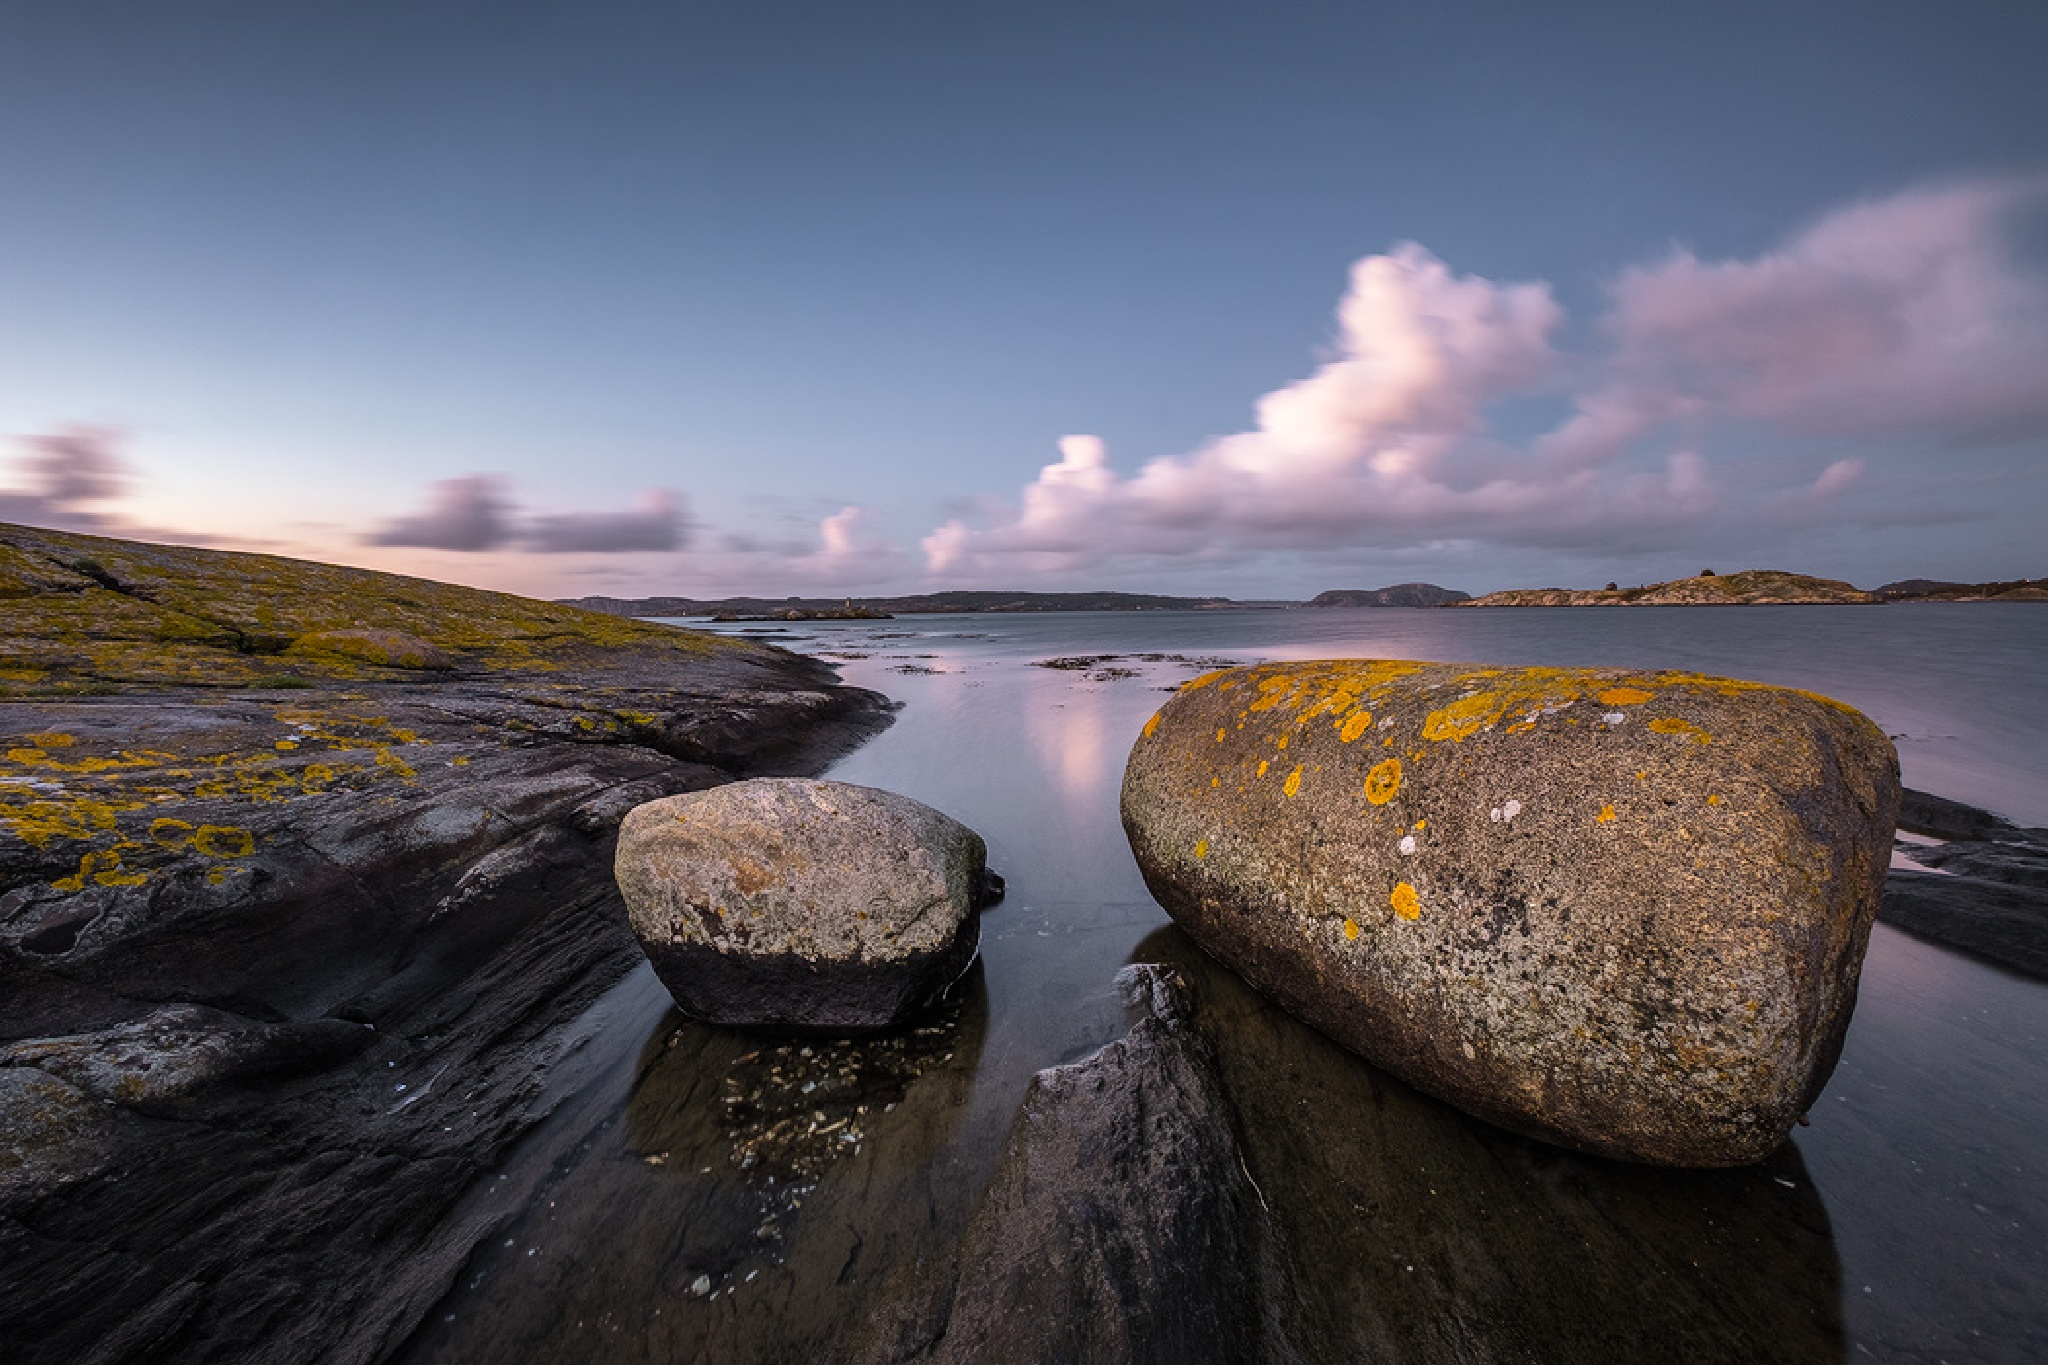 Rocks, Water and Sky by Ludwig Riml